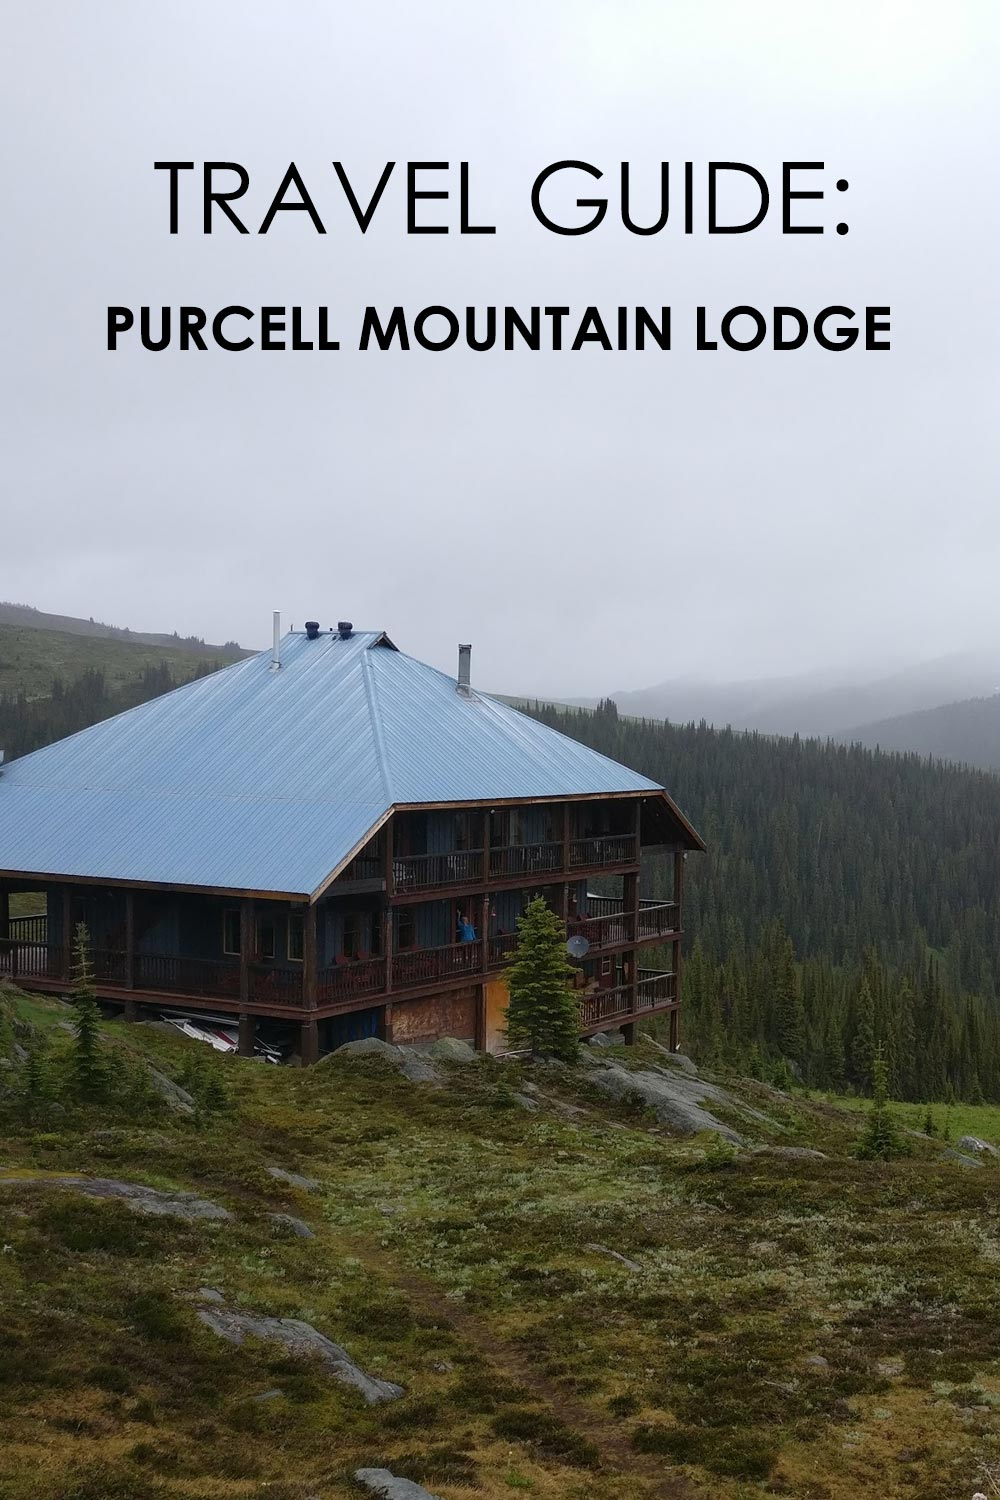 Travel Guide to Purcell Mountain Lodge in BC, Canada - Pinterest